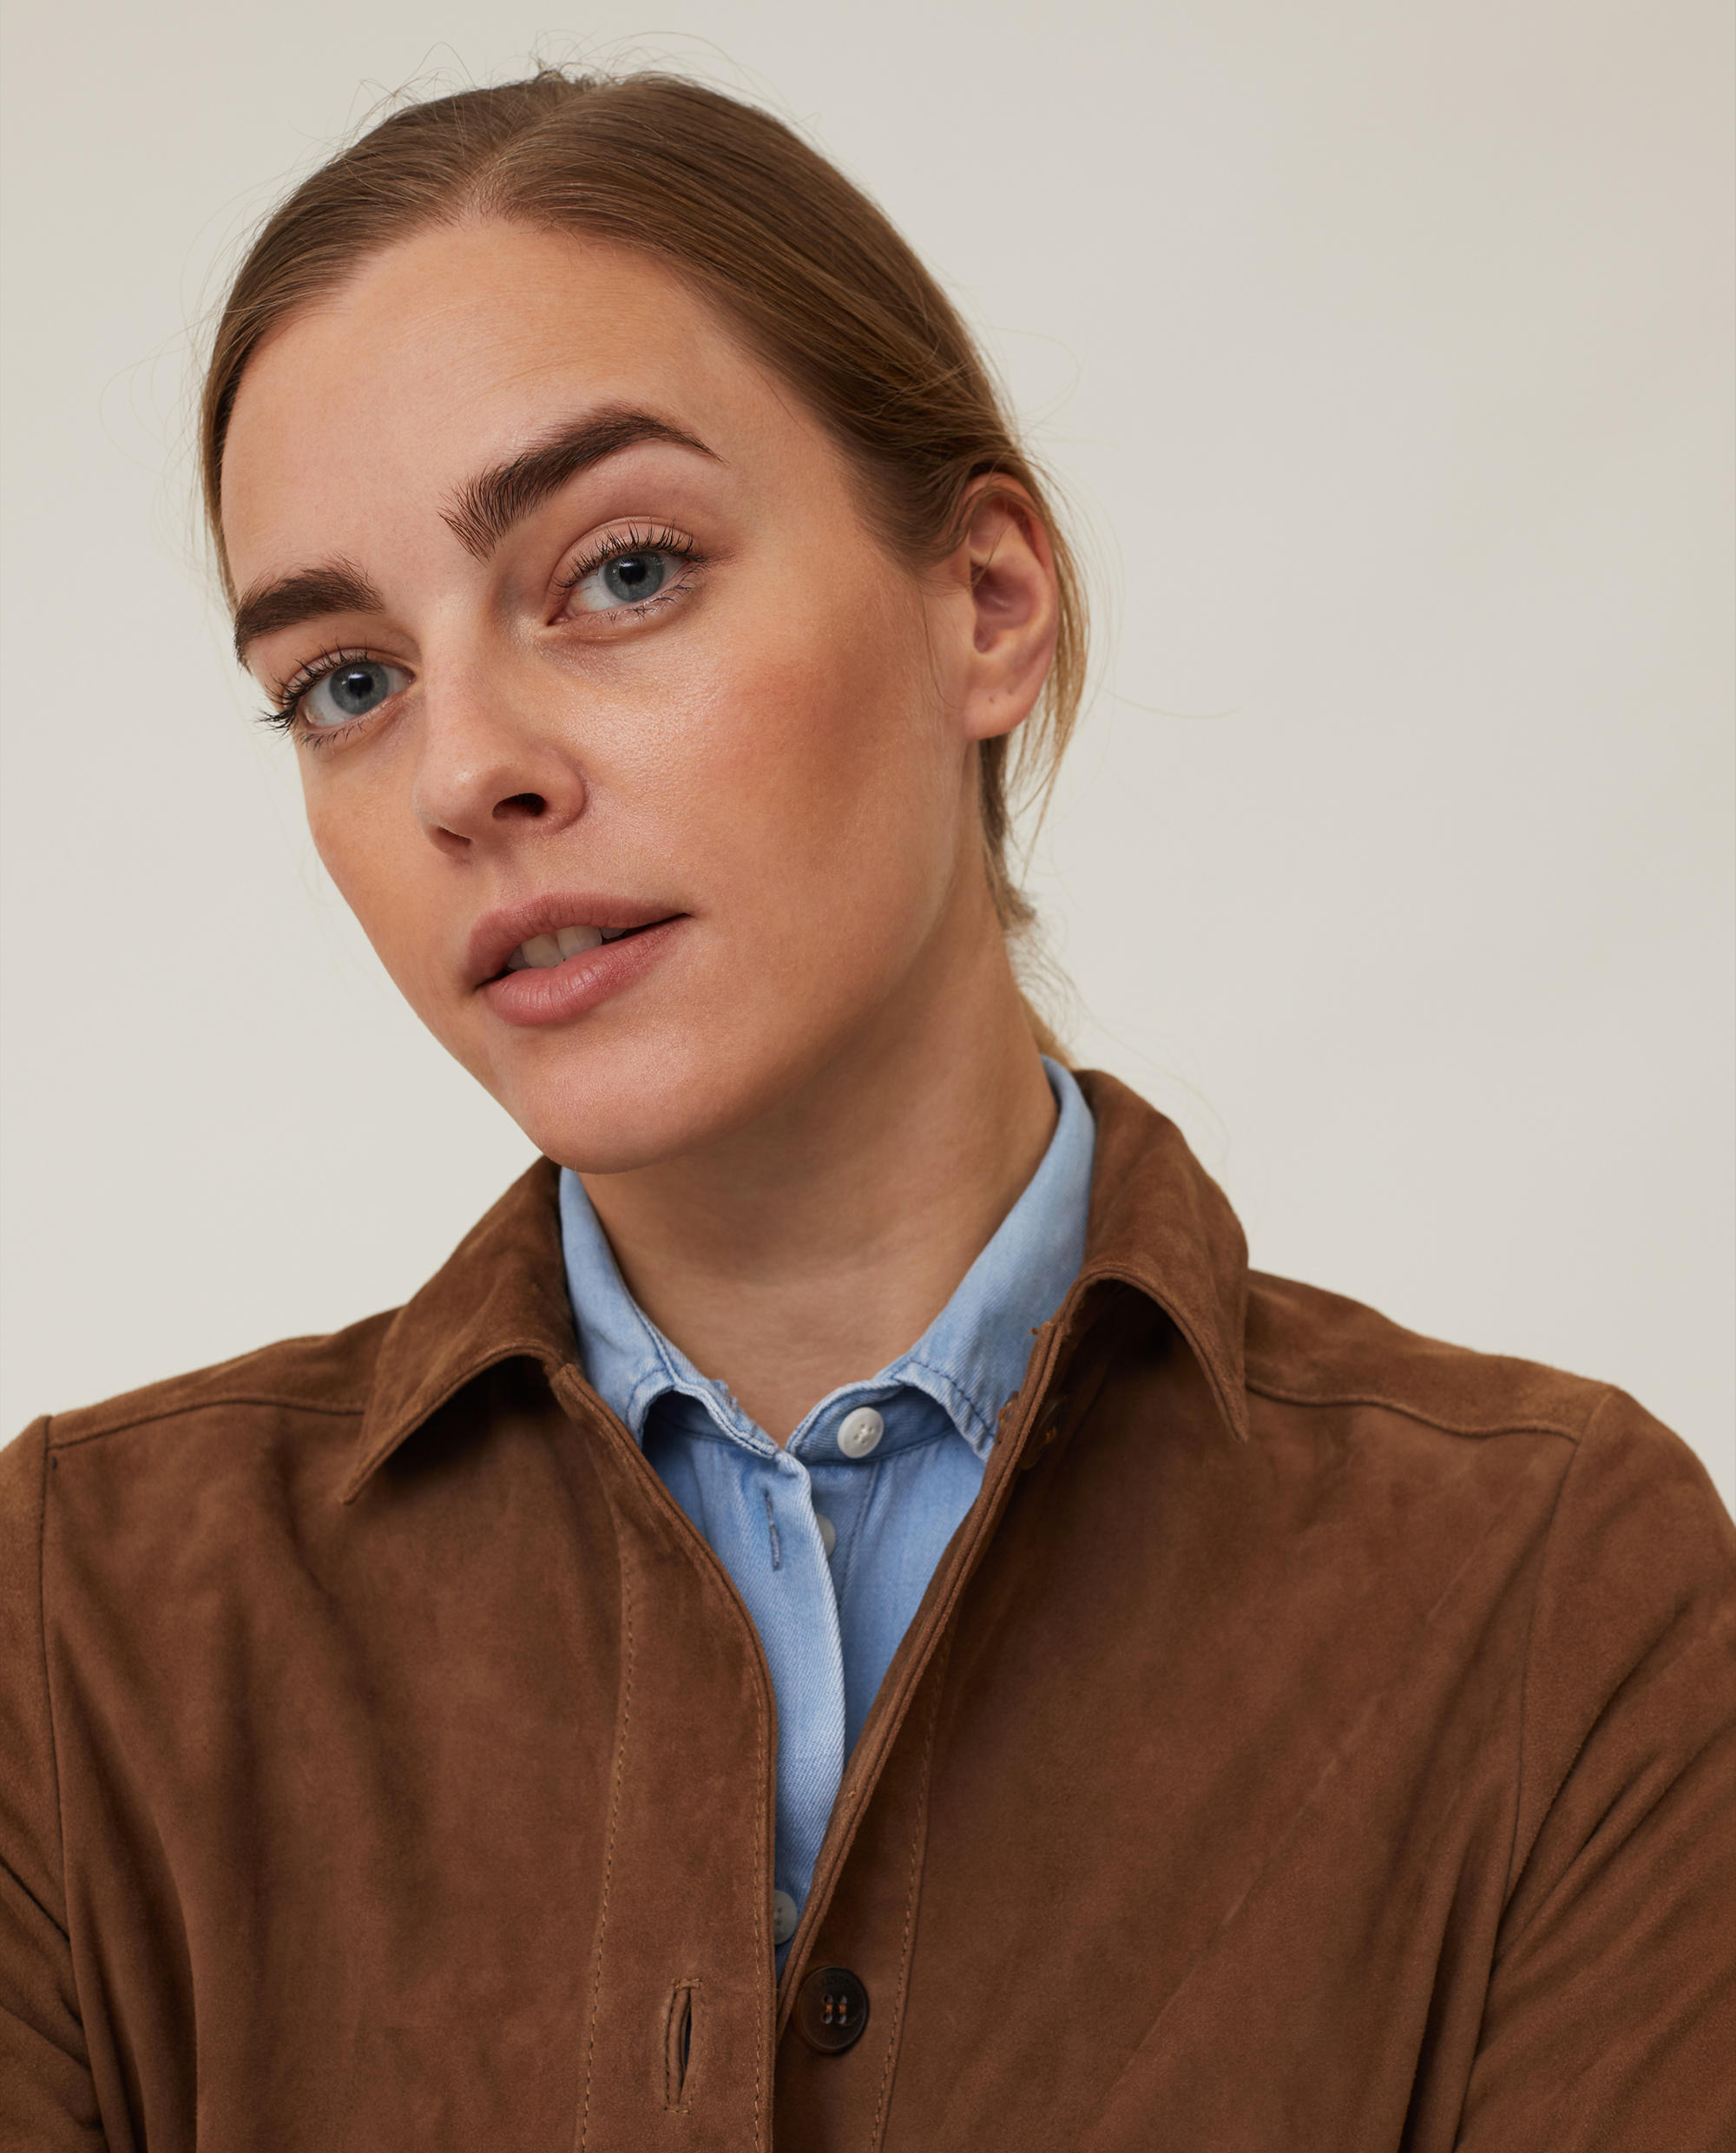 Kathy Suede Worker Shirt, Brown